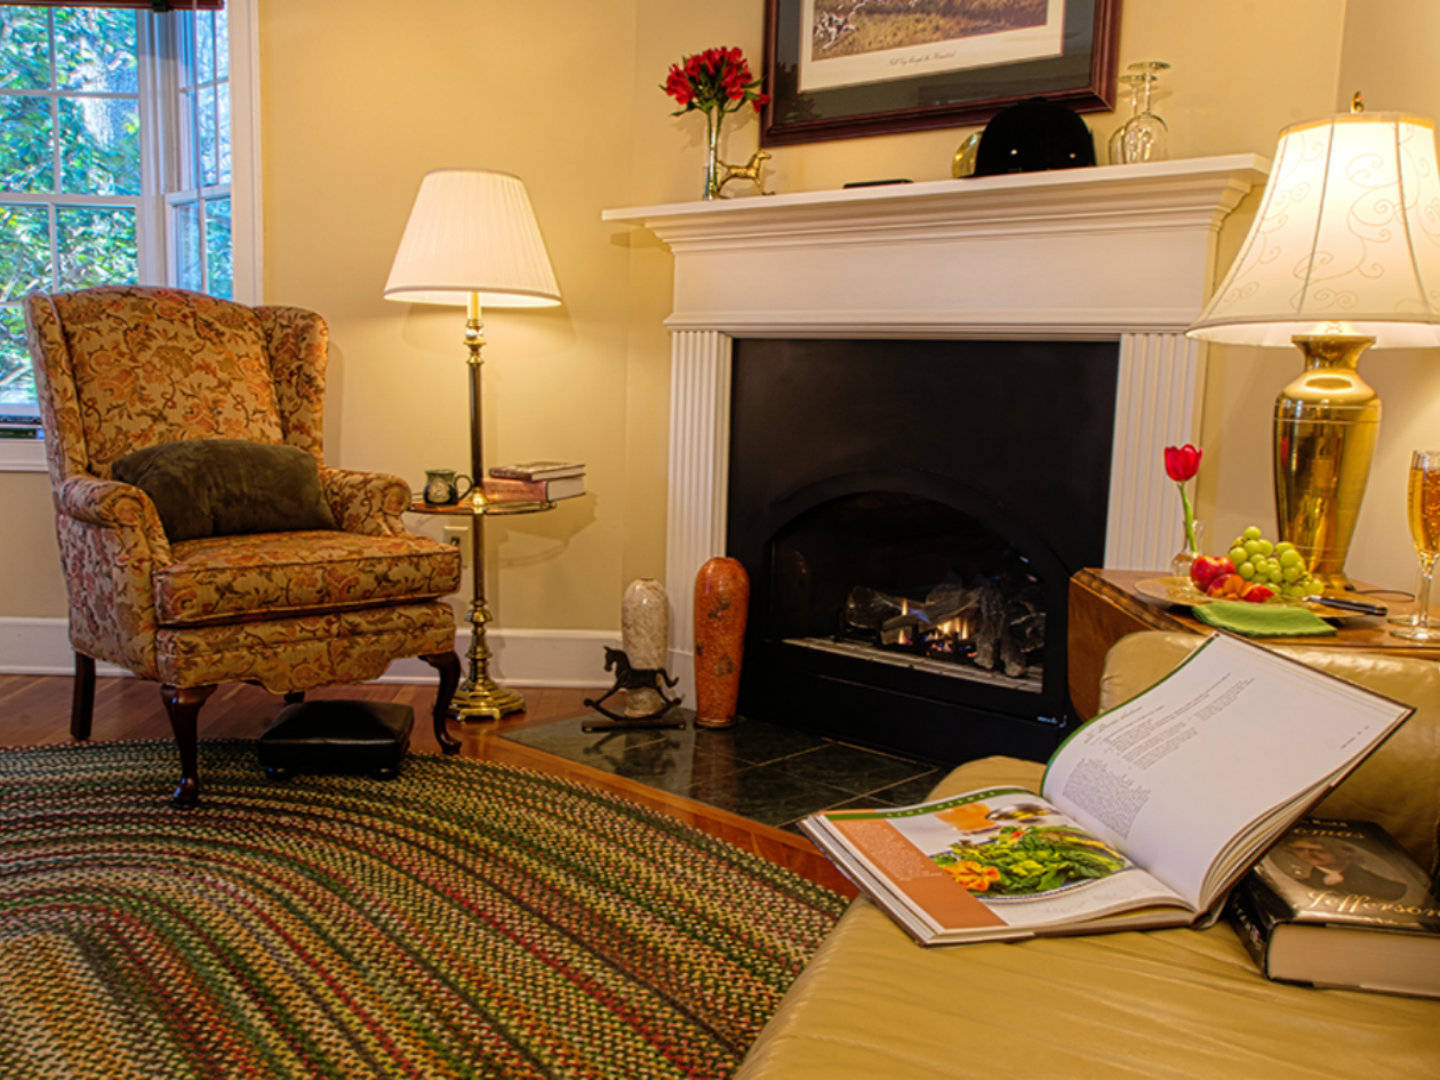 Charlottesville Bed and Breakfast